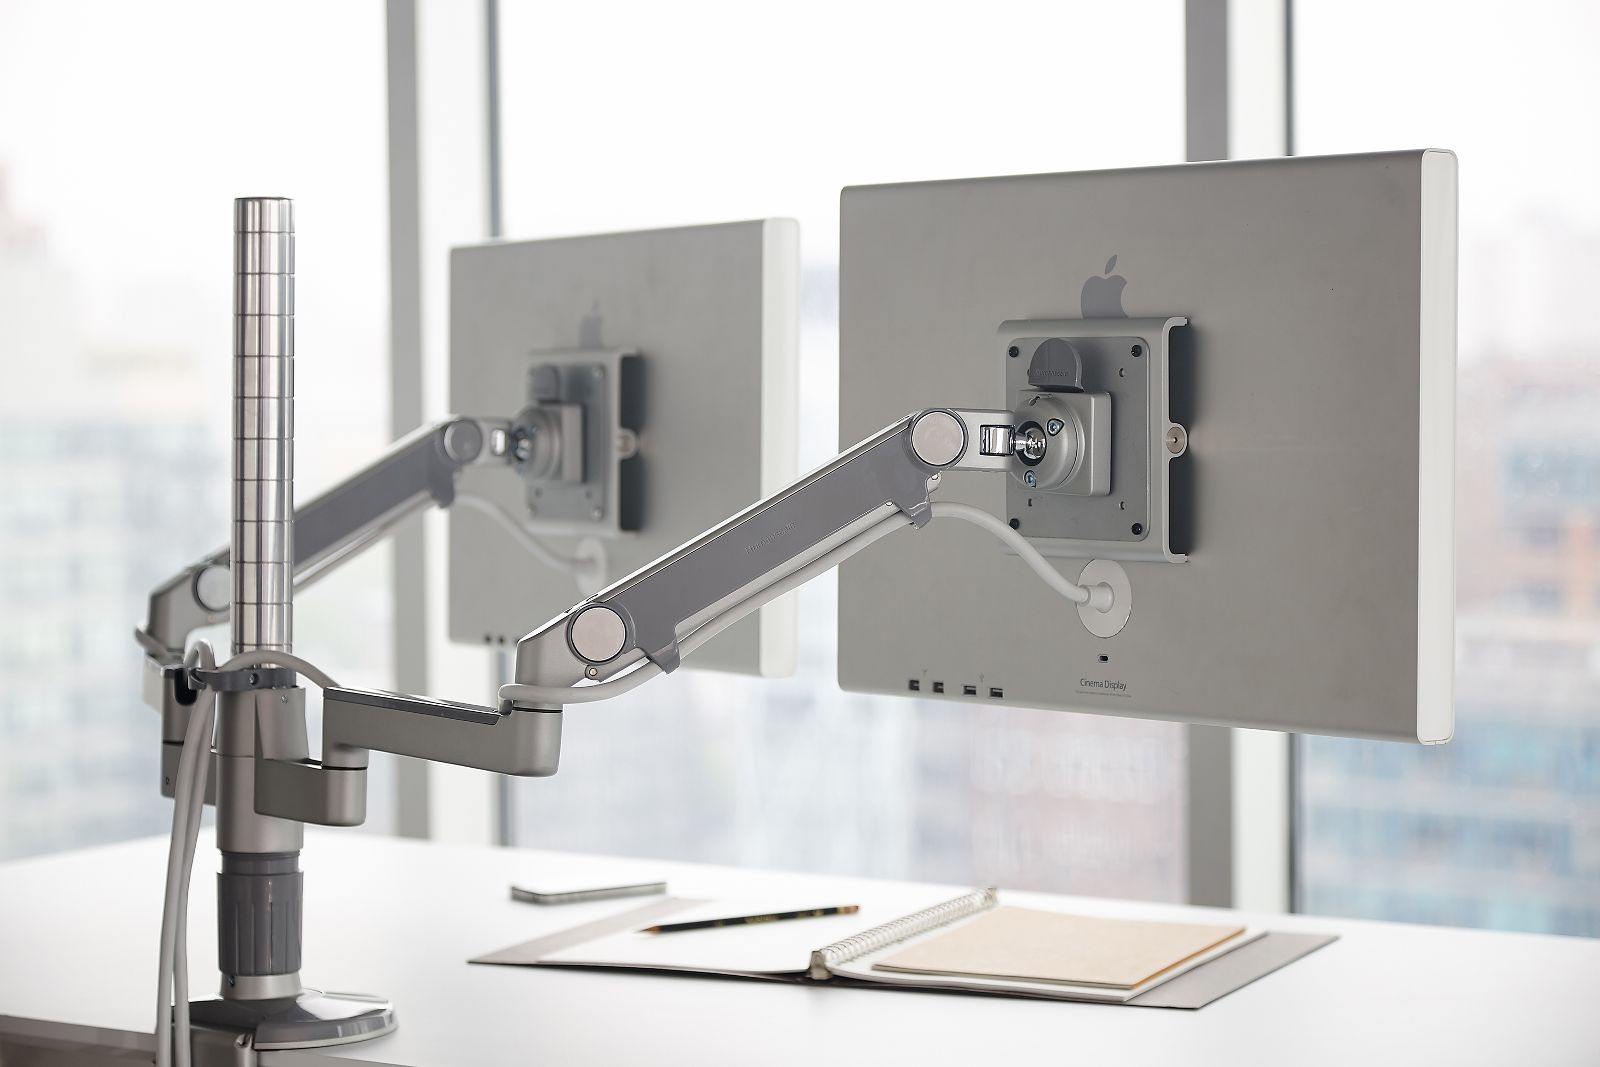 M Flex Humanscale S Multi Monitor Arm Support System